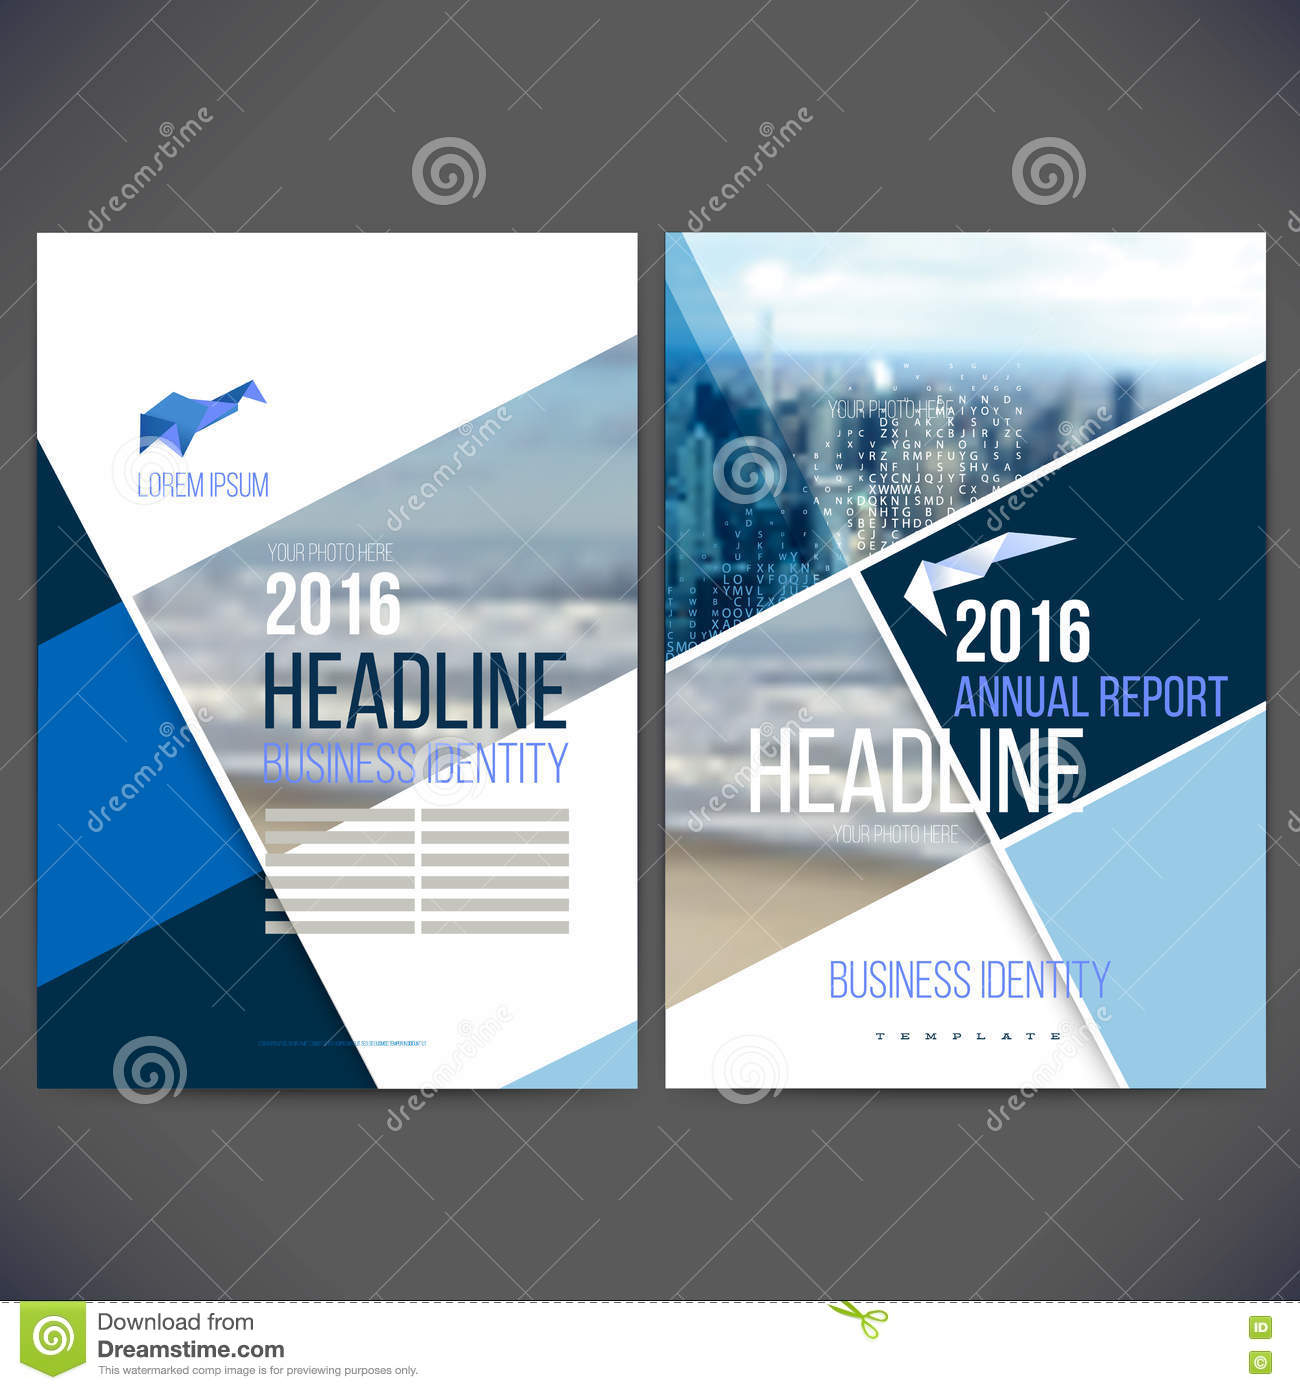 Vector Template Design Annual Report 2017 With Background